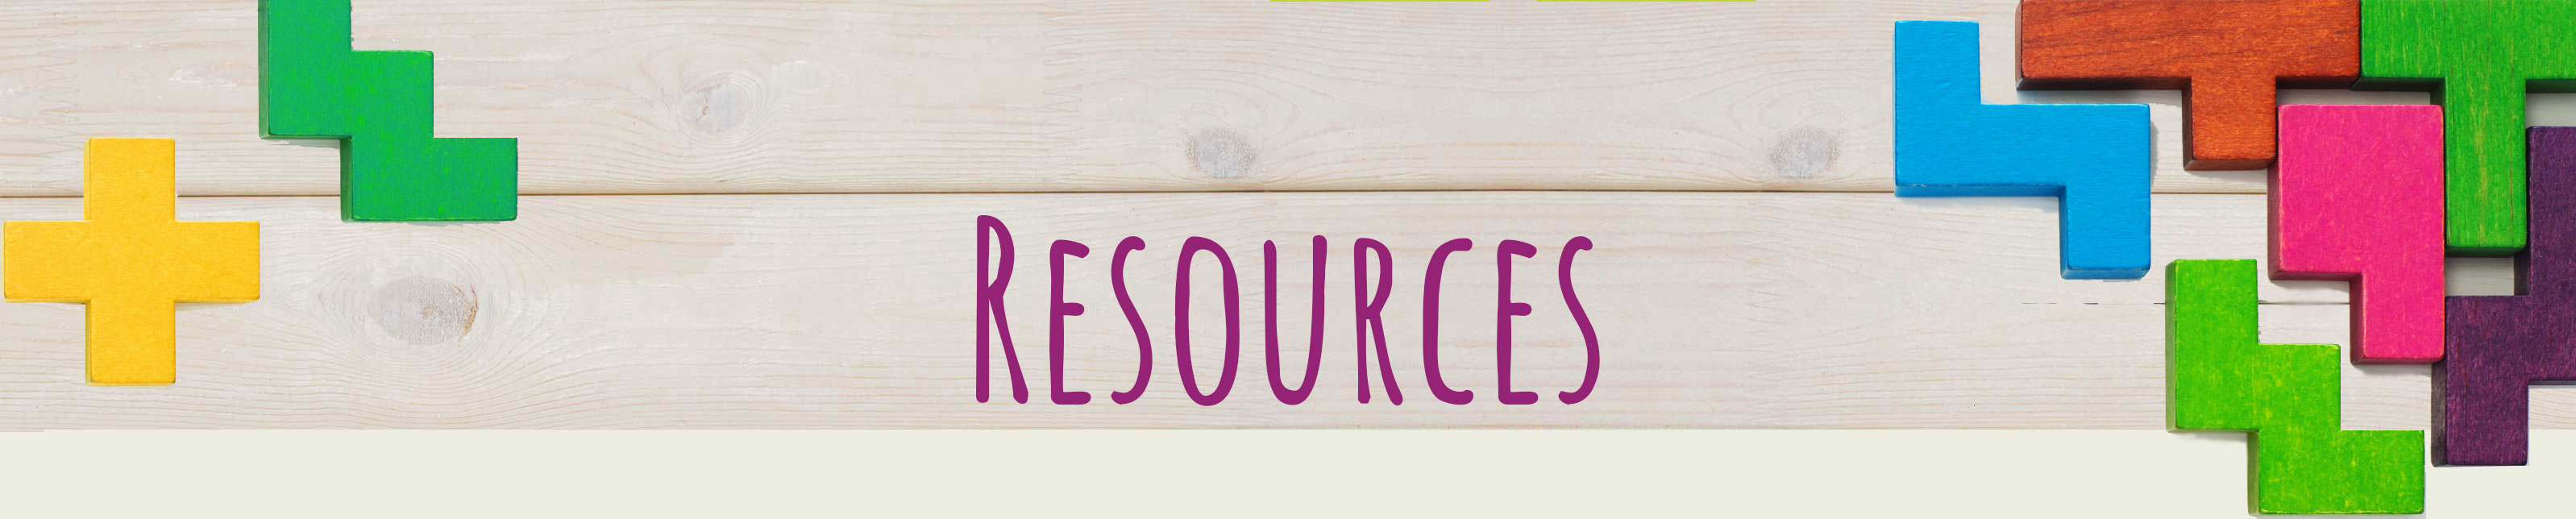 Header Resources